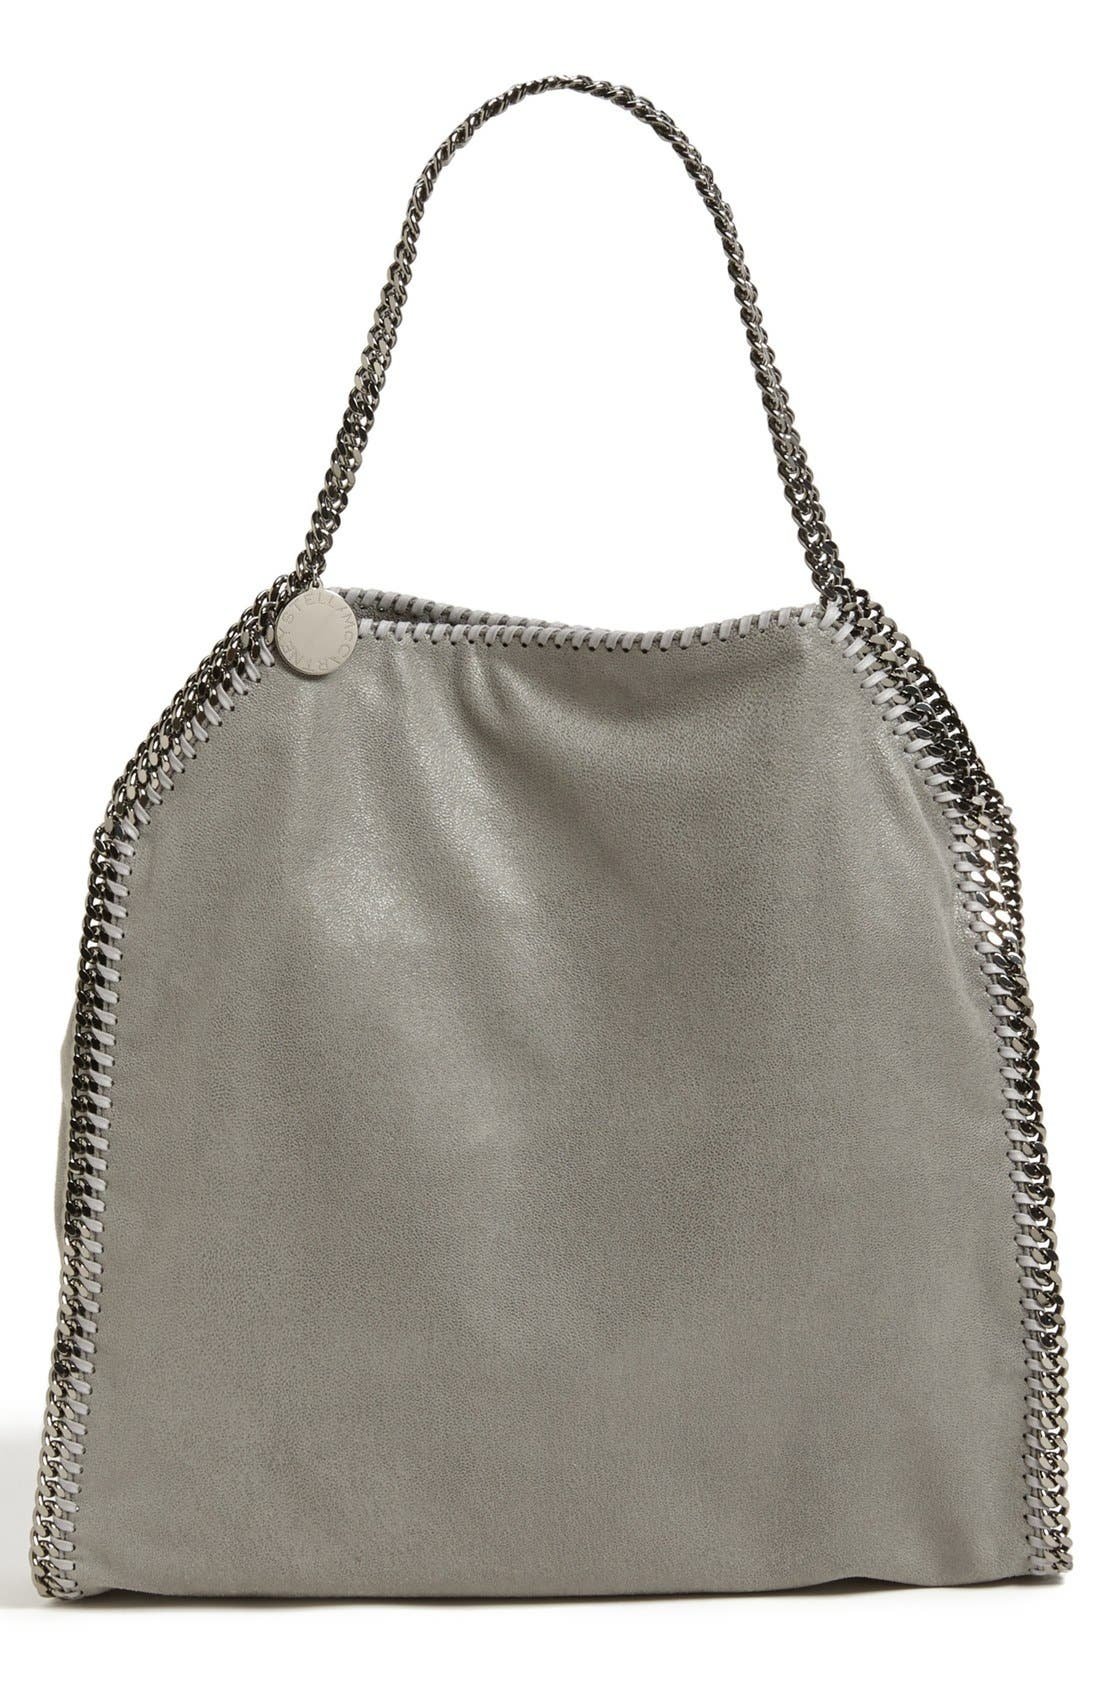 Stella McCartney 'Large Falabella - Shaggy Deer' Faux Leather Tote